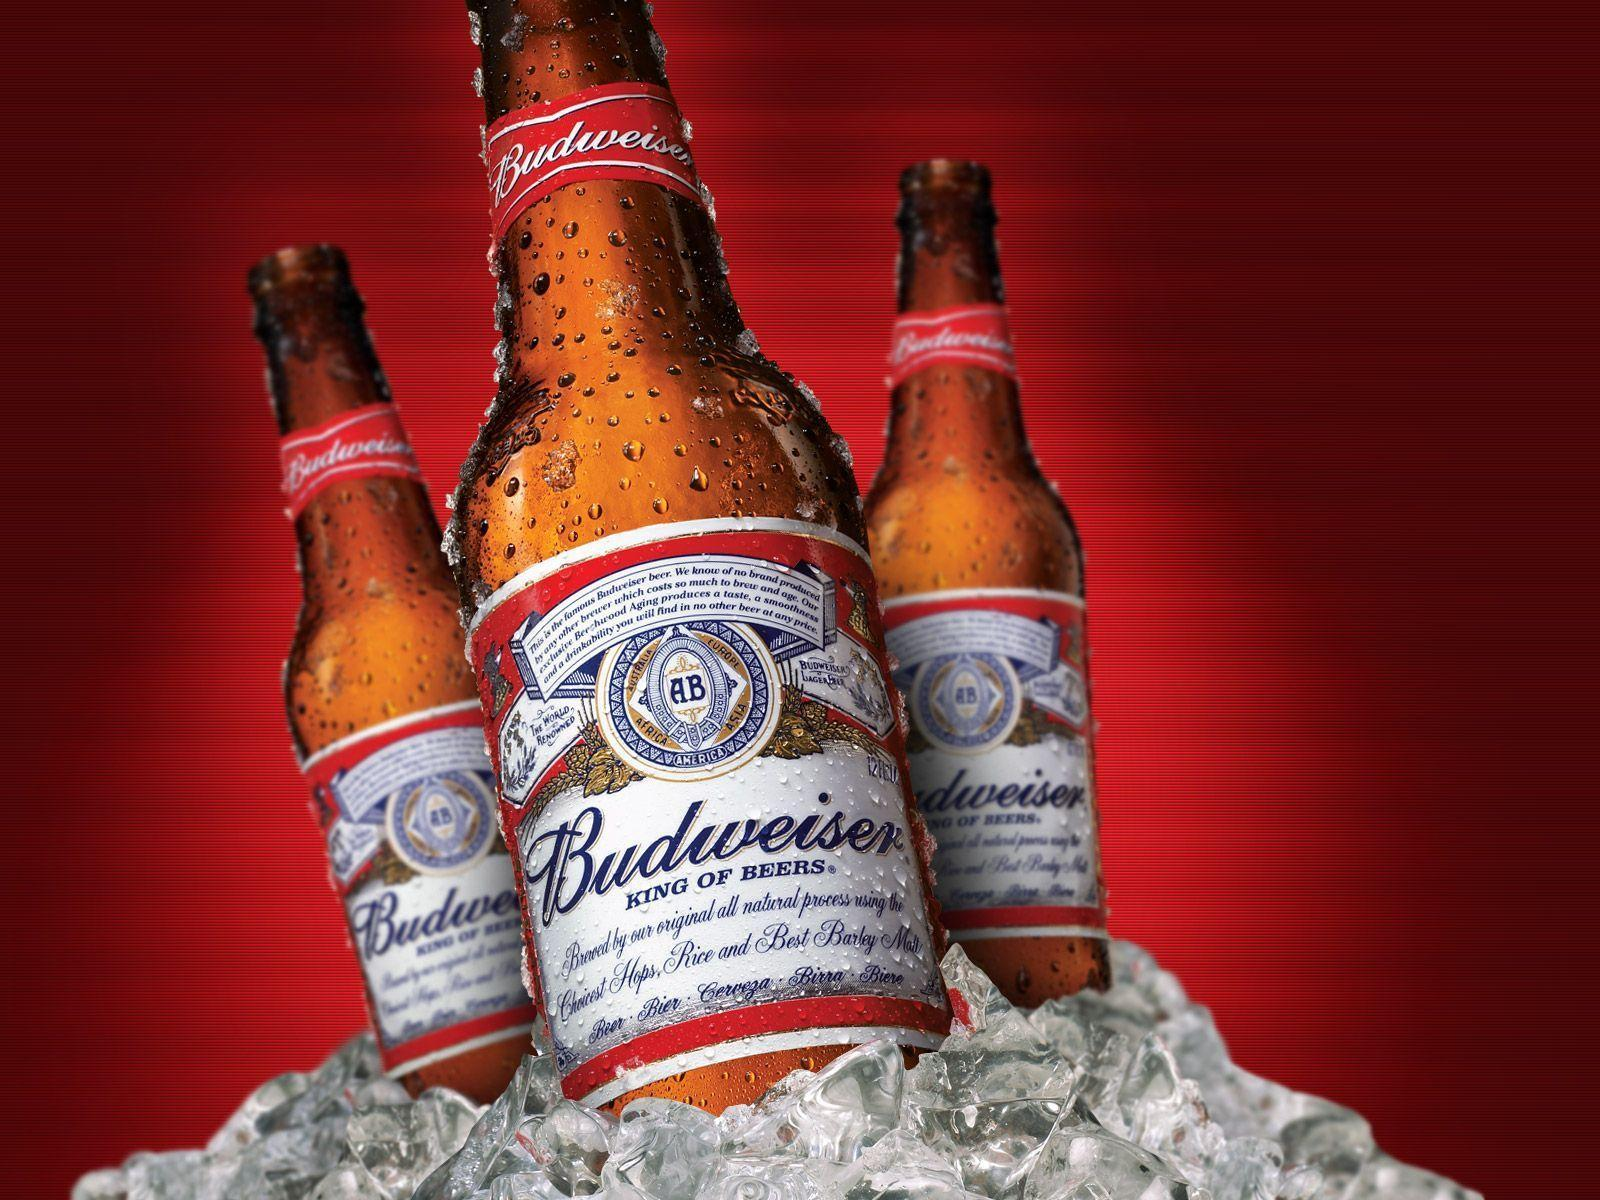 Budweiser Wallpapers Wallpaper Cave HD Wallpapers Download Free Images Wallpaper [1000image.com]